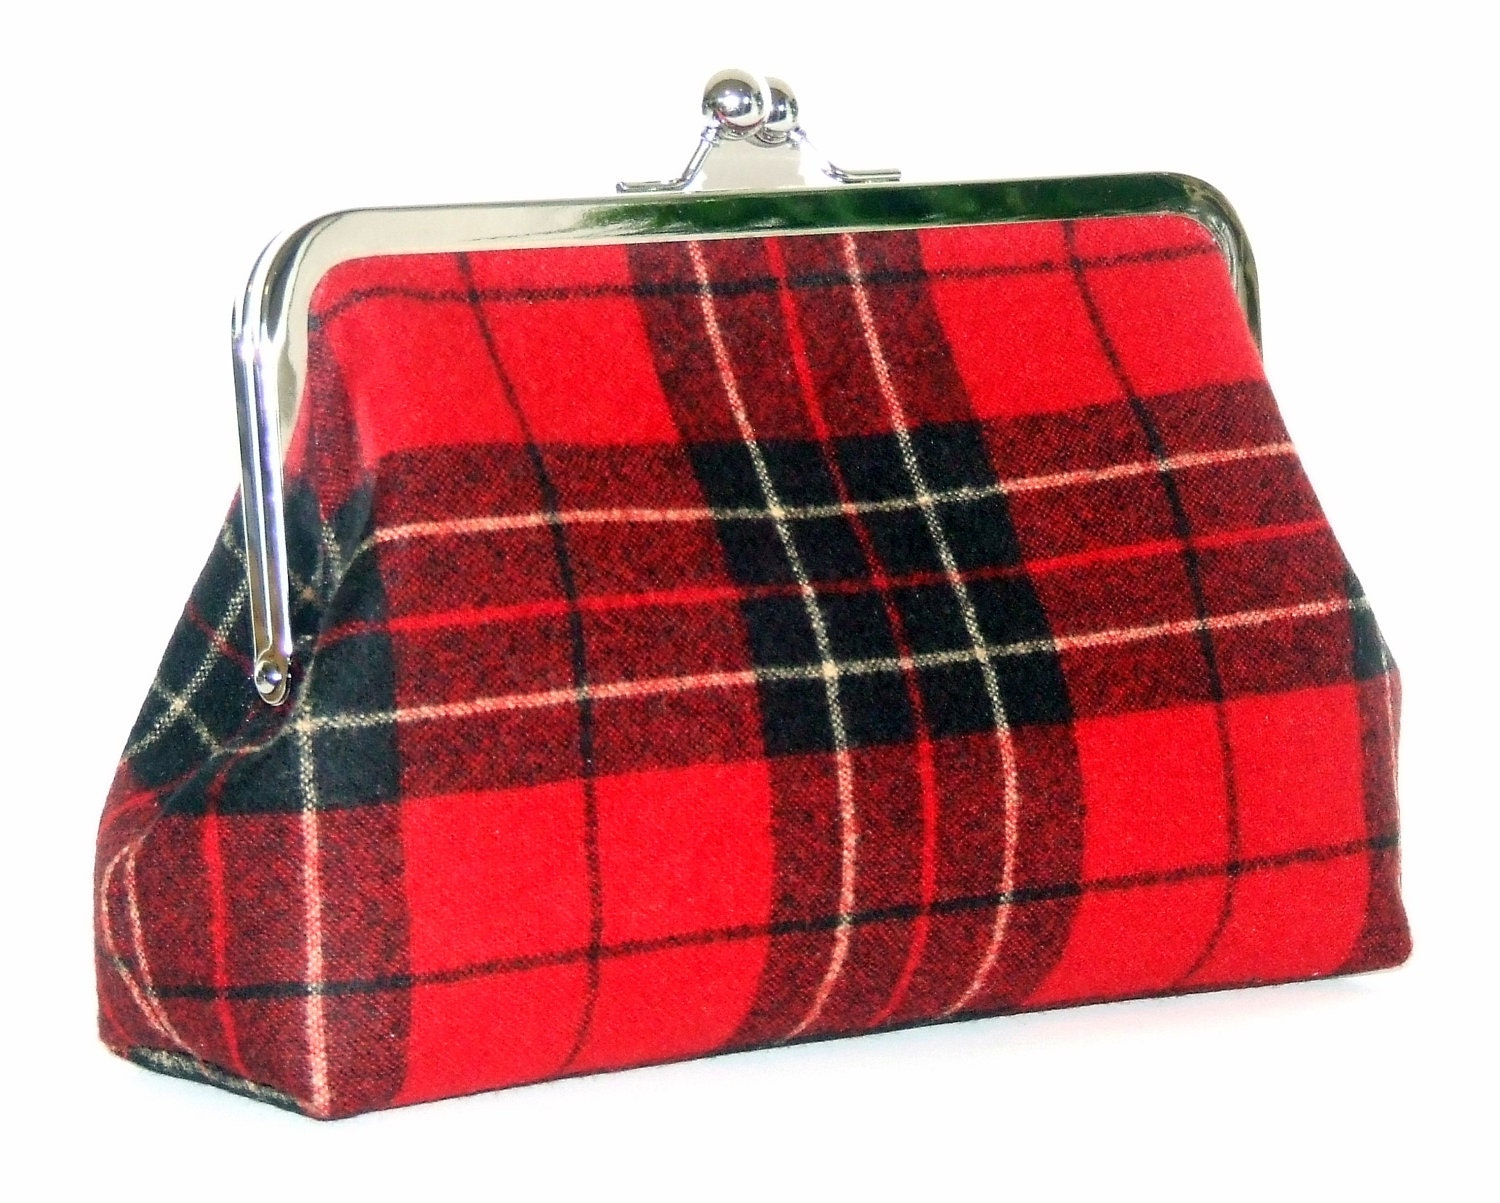 Pendleton Wool Clutch - Red and Black Brodie Tartan Plaid